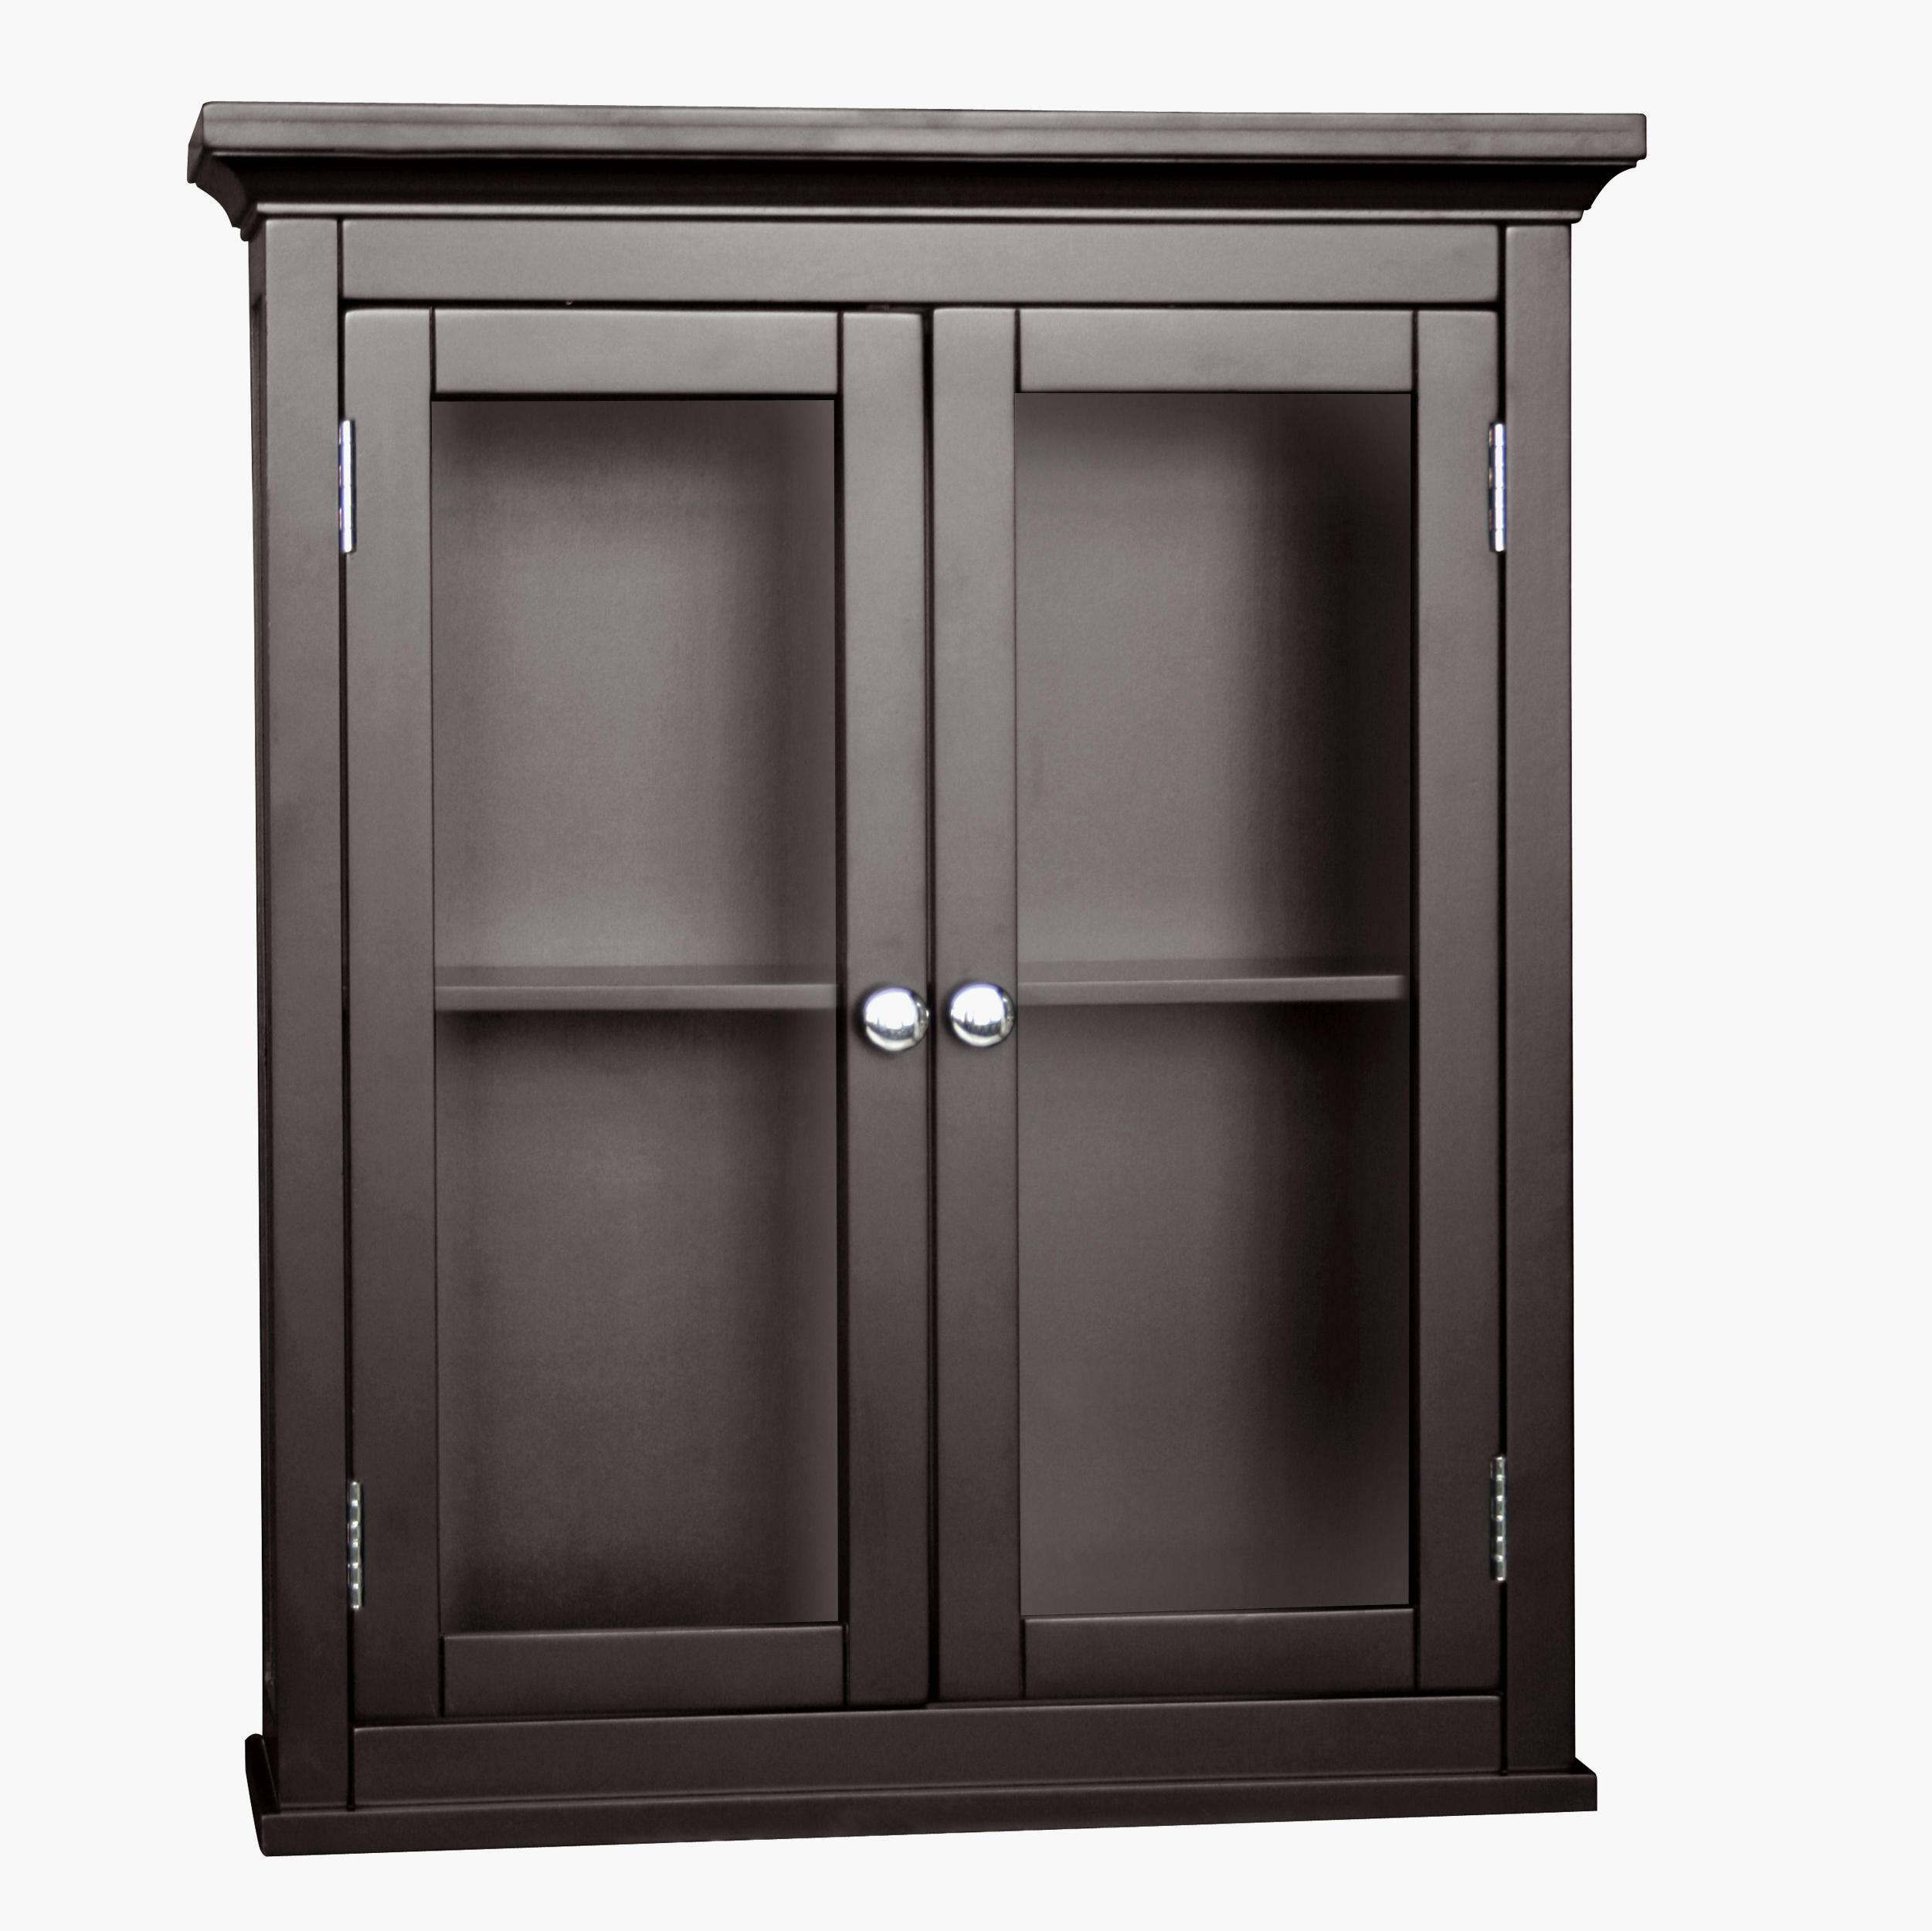 Glass door cabinet bathroom - Classique Espresso 2 Door Wall Cabinet By Elegant Home Fashions